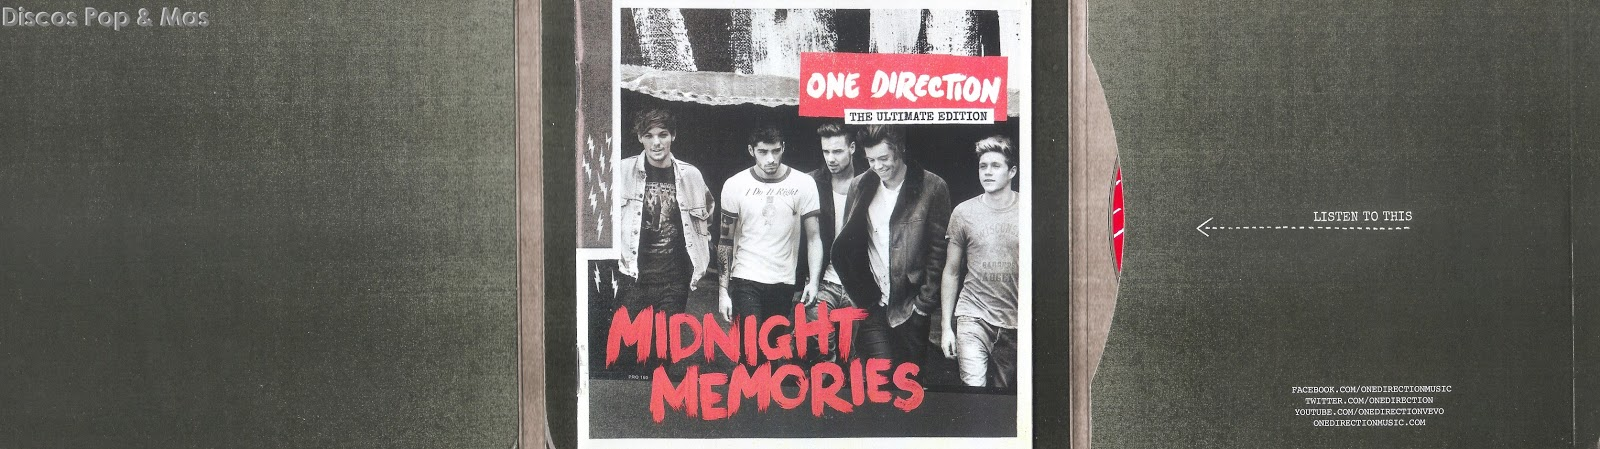 Discos Pop & Mas: One Direction - Midnight Memories: The ...